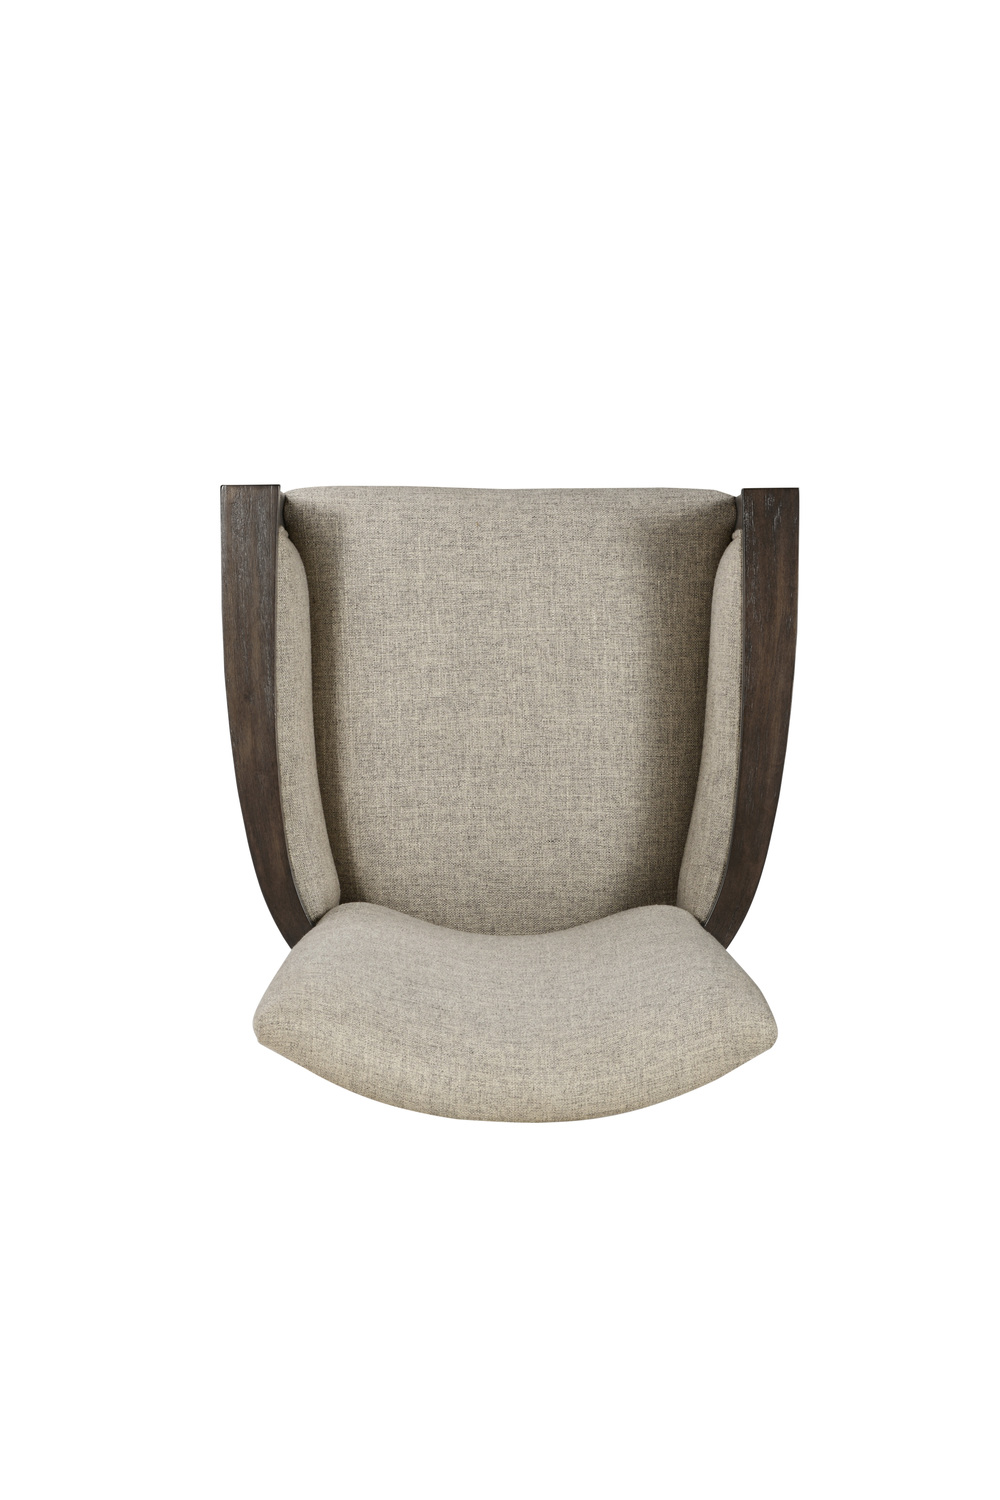 A.R.T. Furniture - Racine Upholstered Arm  Chair